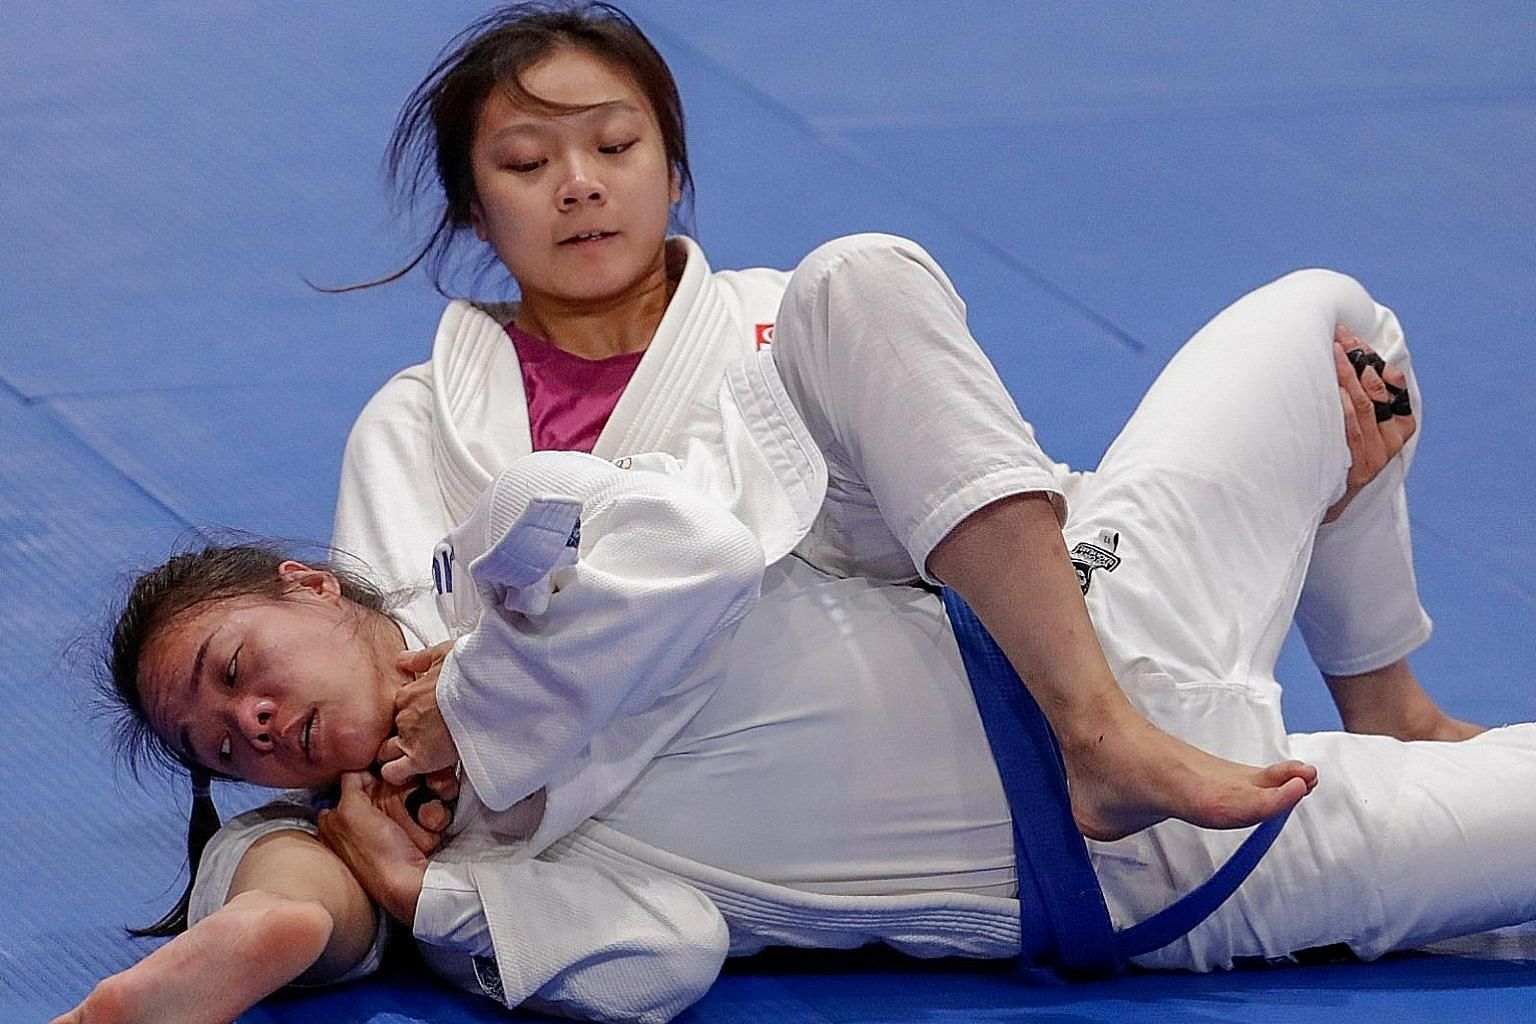 Constance Lien proving too strong for Vietnam's Nguyen Ngoc Tu in the ne-waza Under-62kg final last year, clinching her first SEA Games gold medal. The Singaporean is one of 17 first-time recipients of the spexScholarship. PHOTO: SPORT SINGAPORE